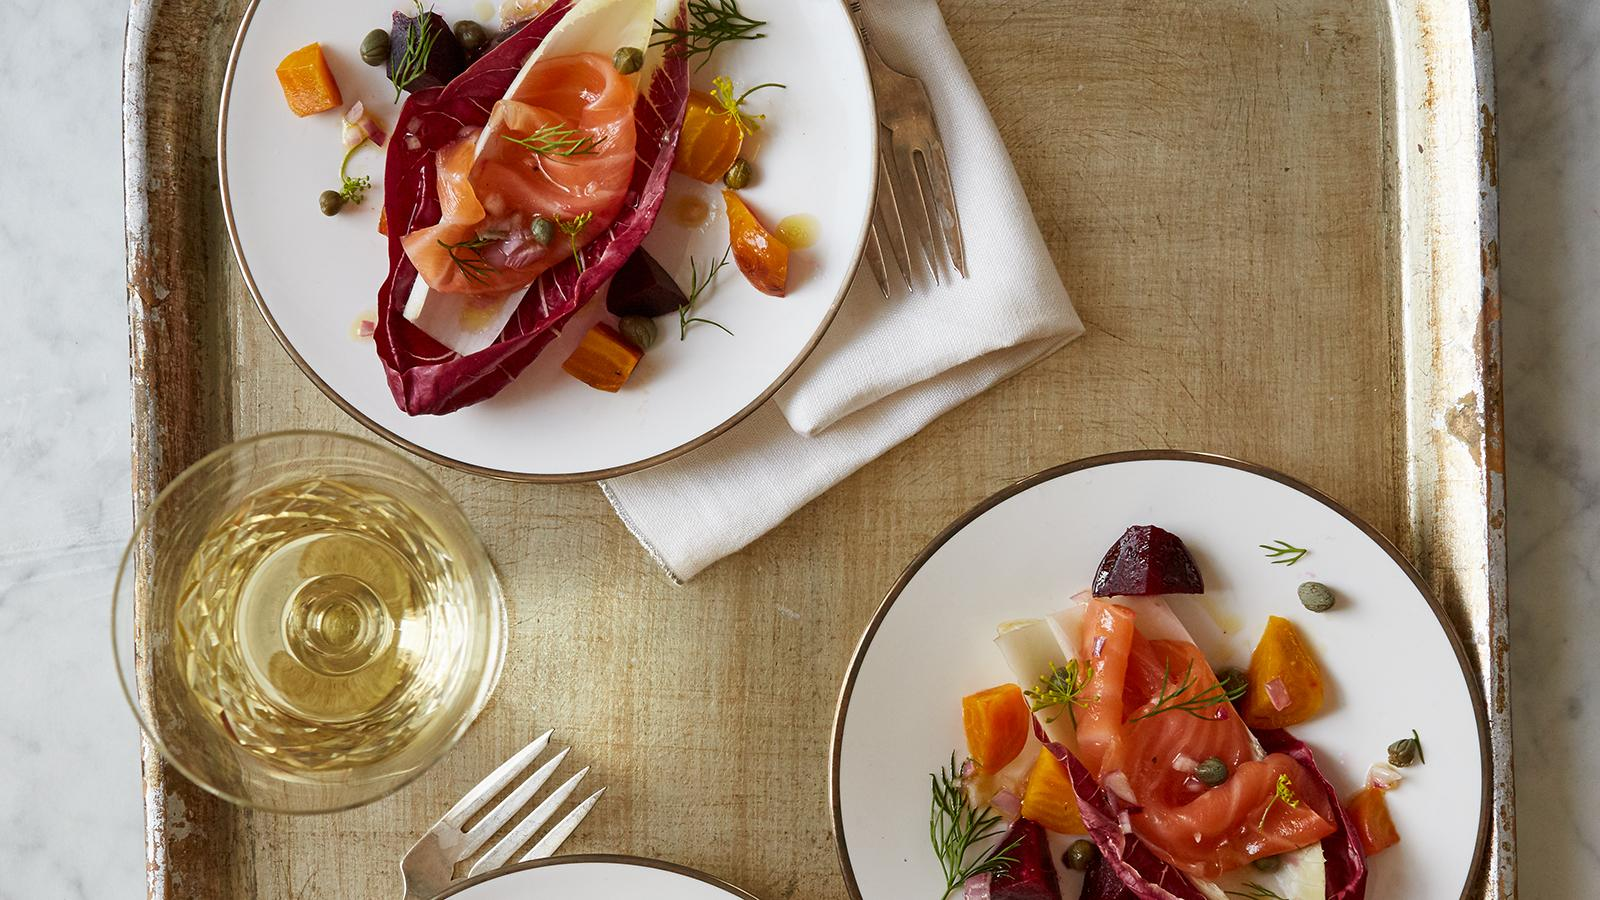 Smoked Salmon with Radicchio, Endives and Dill